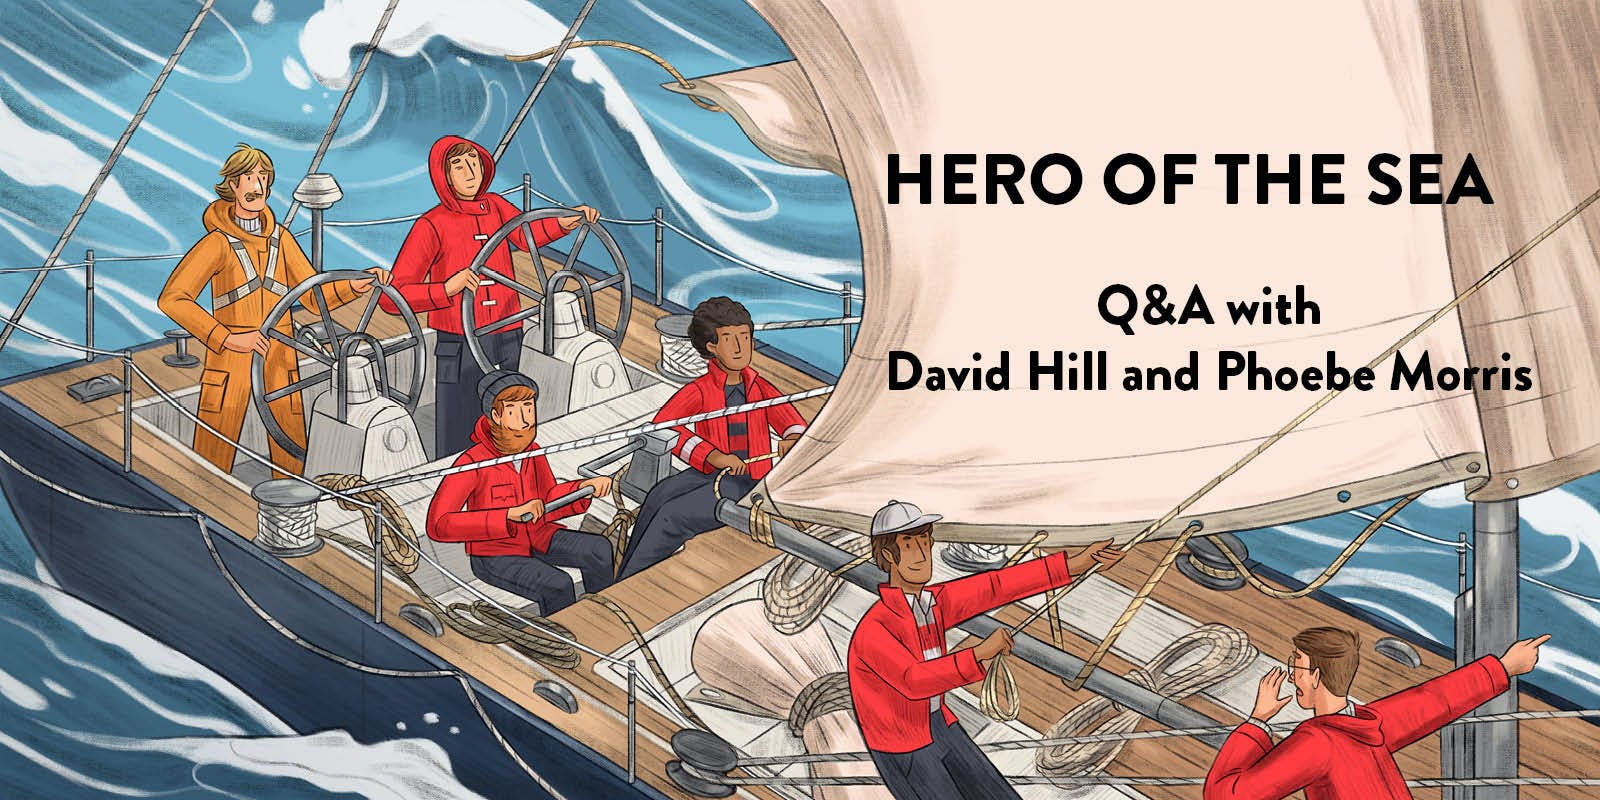 Q&A with David Hill and Phoebe Morris